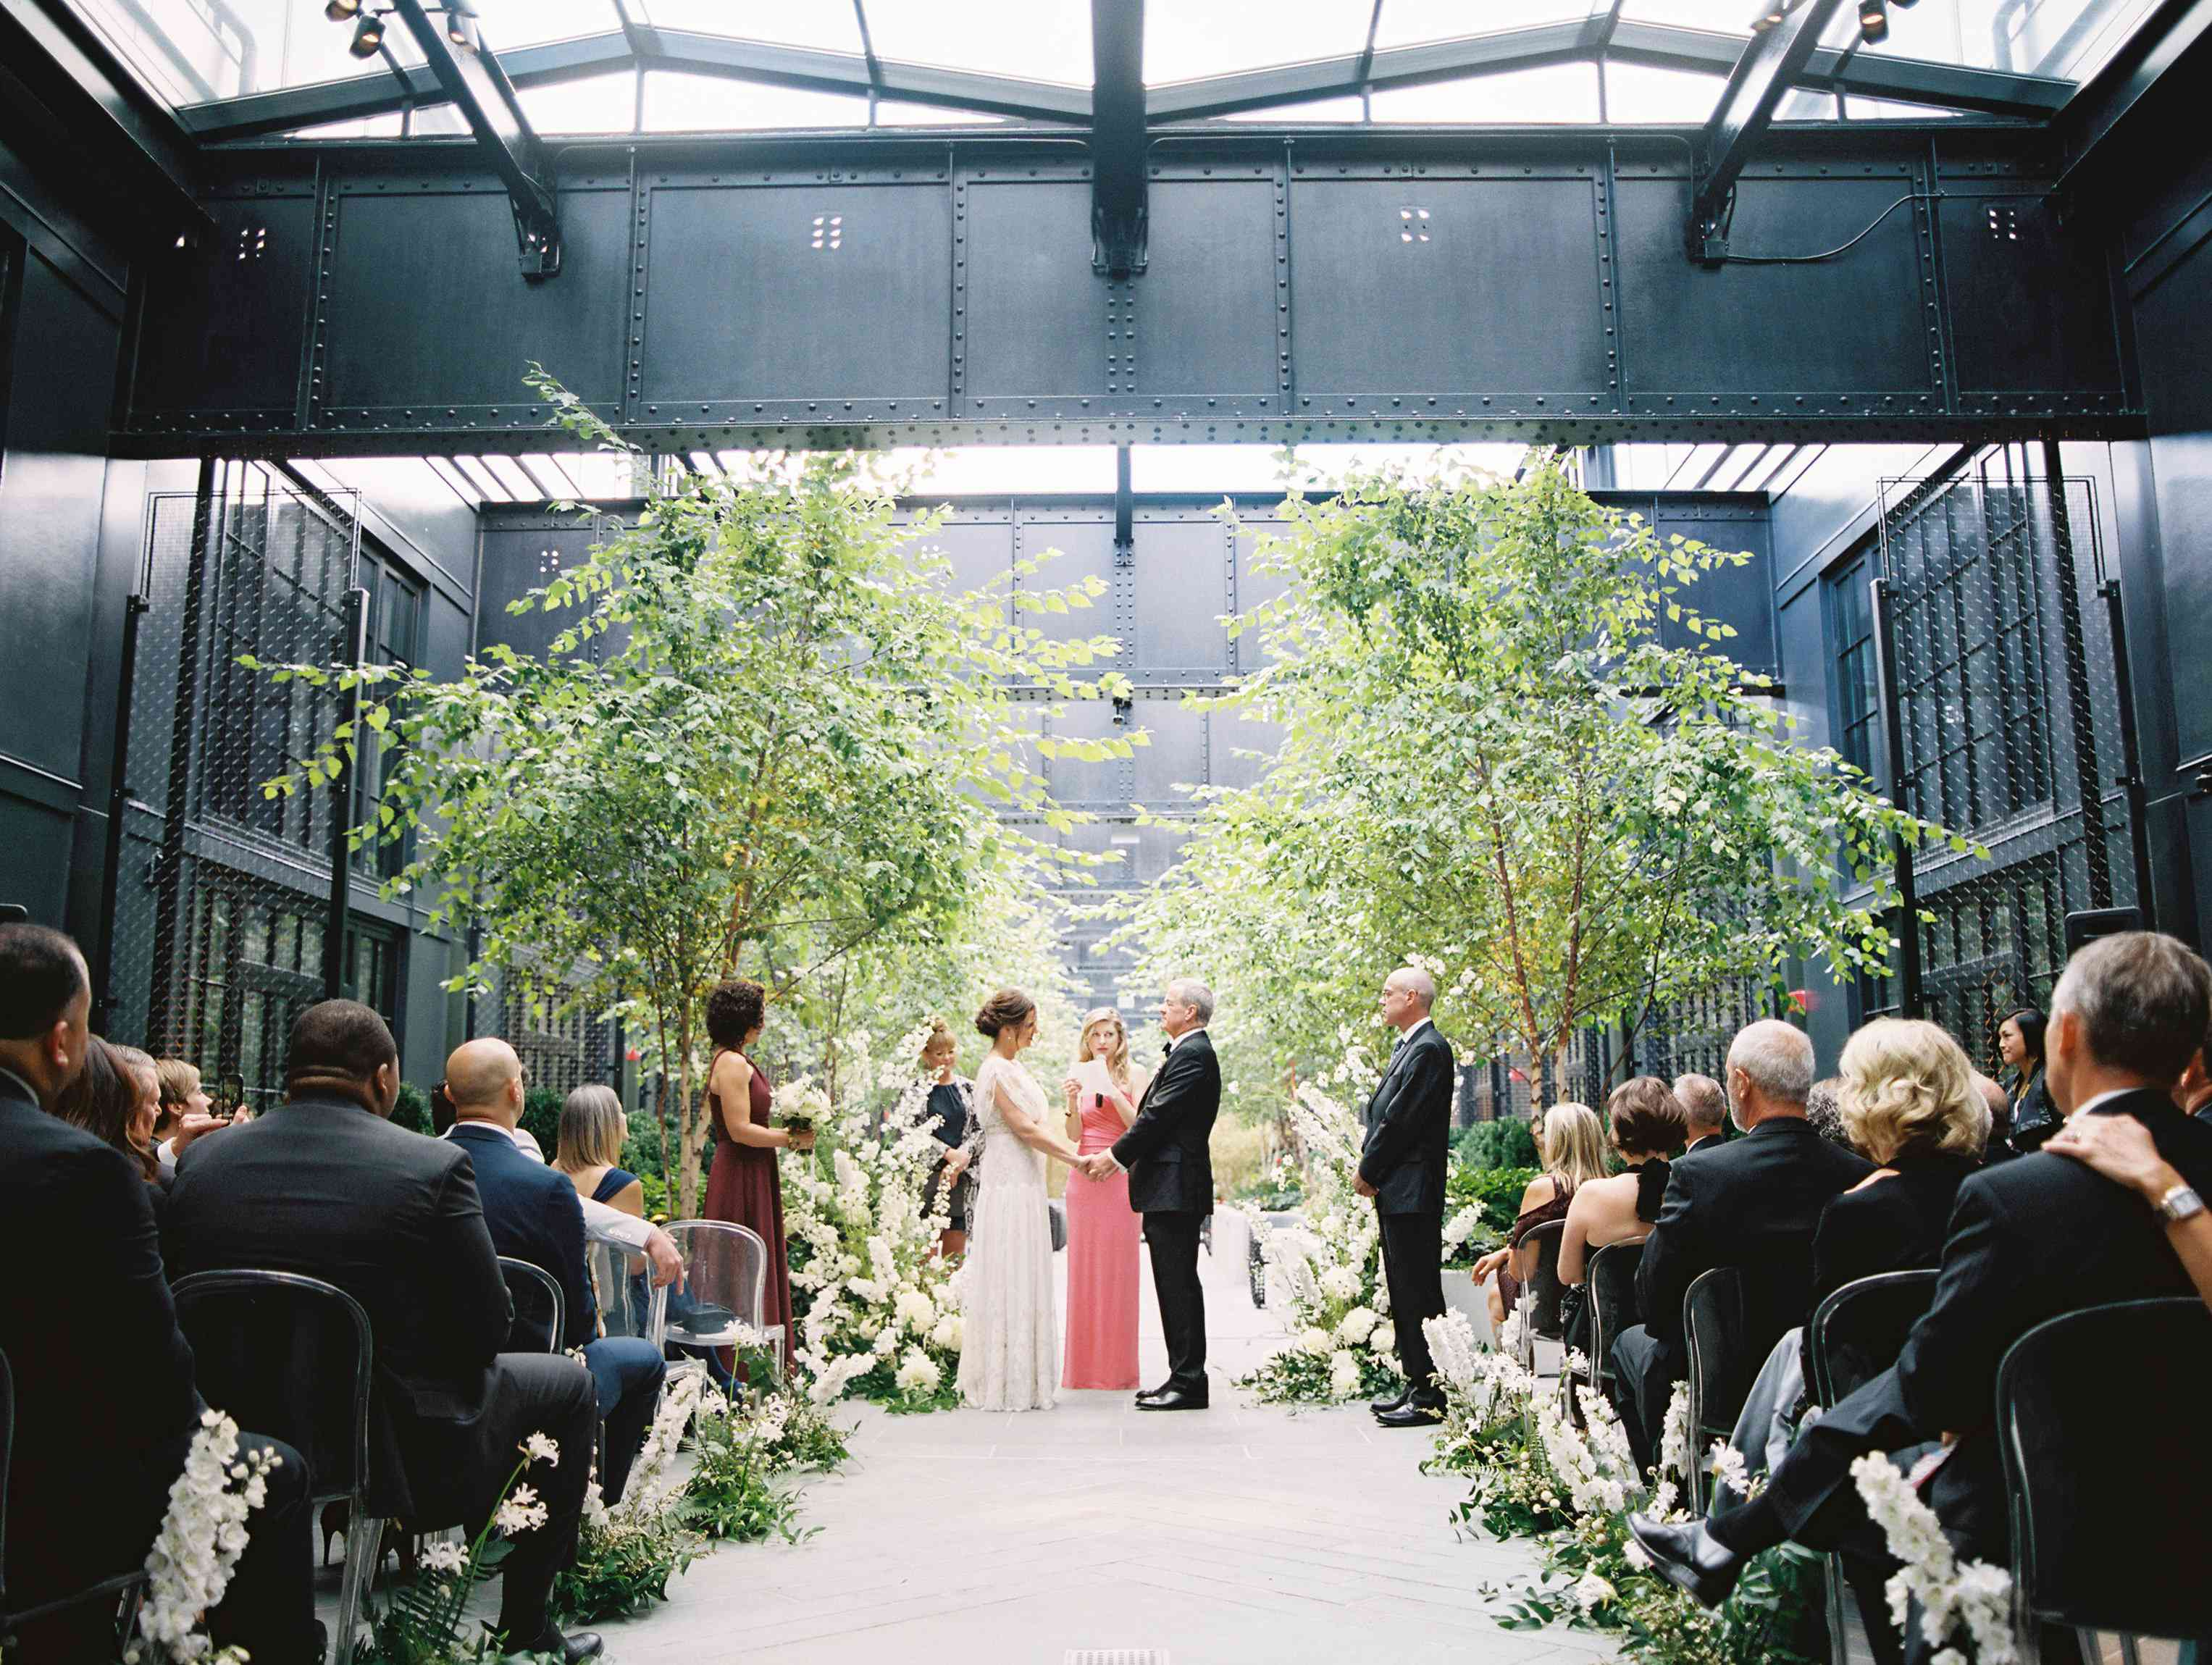 Trees placed indoors for a courtyard wedding